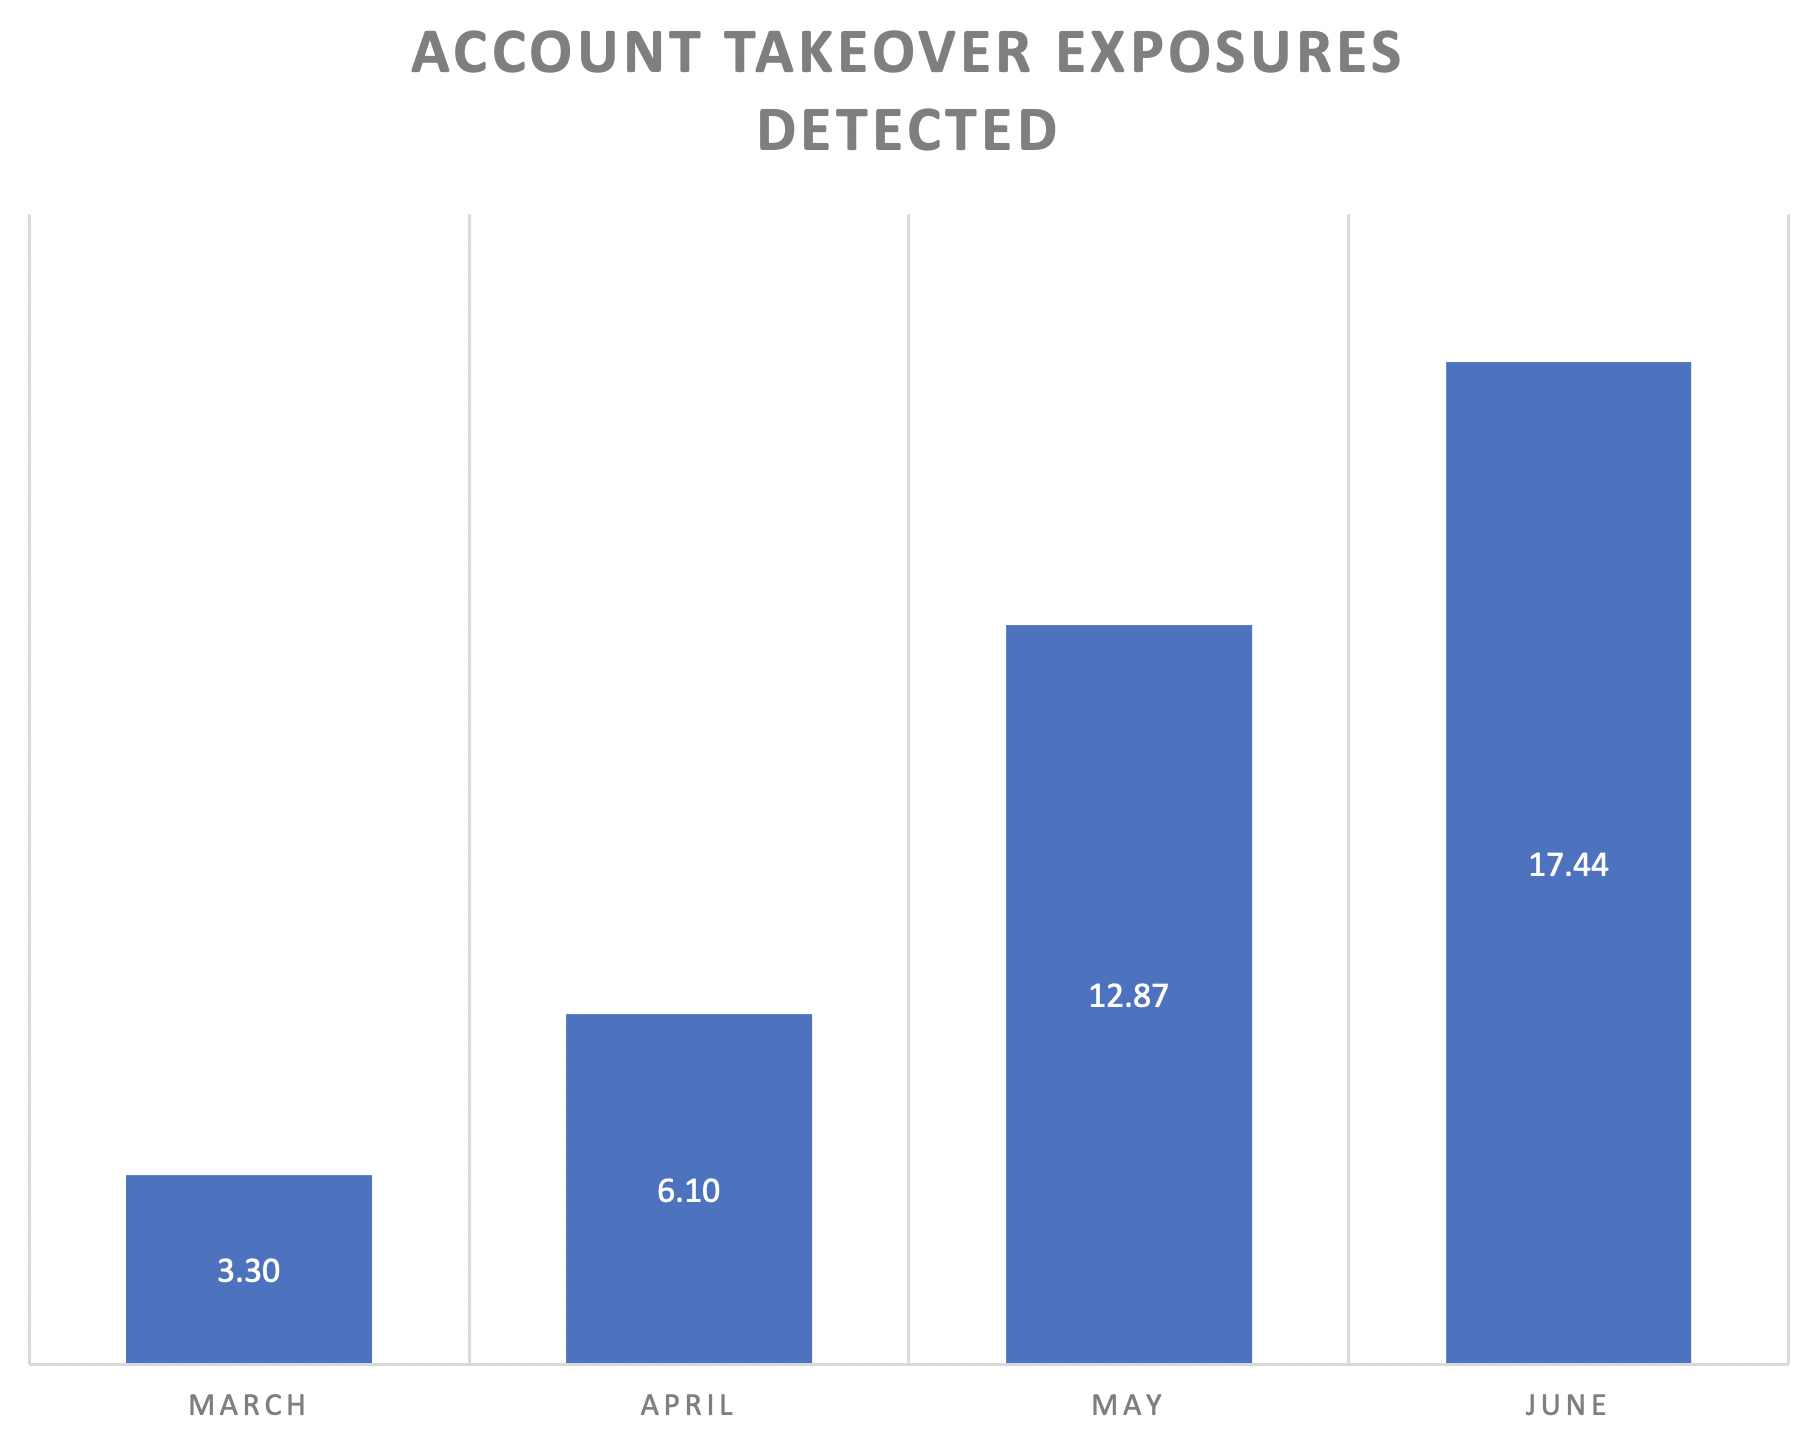 Graph of account takeover exposures detected. Rises from 3.30 in March to 17.44 in June.